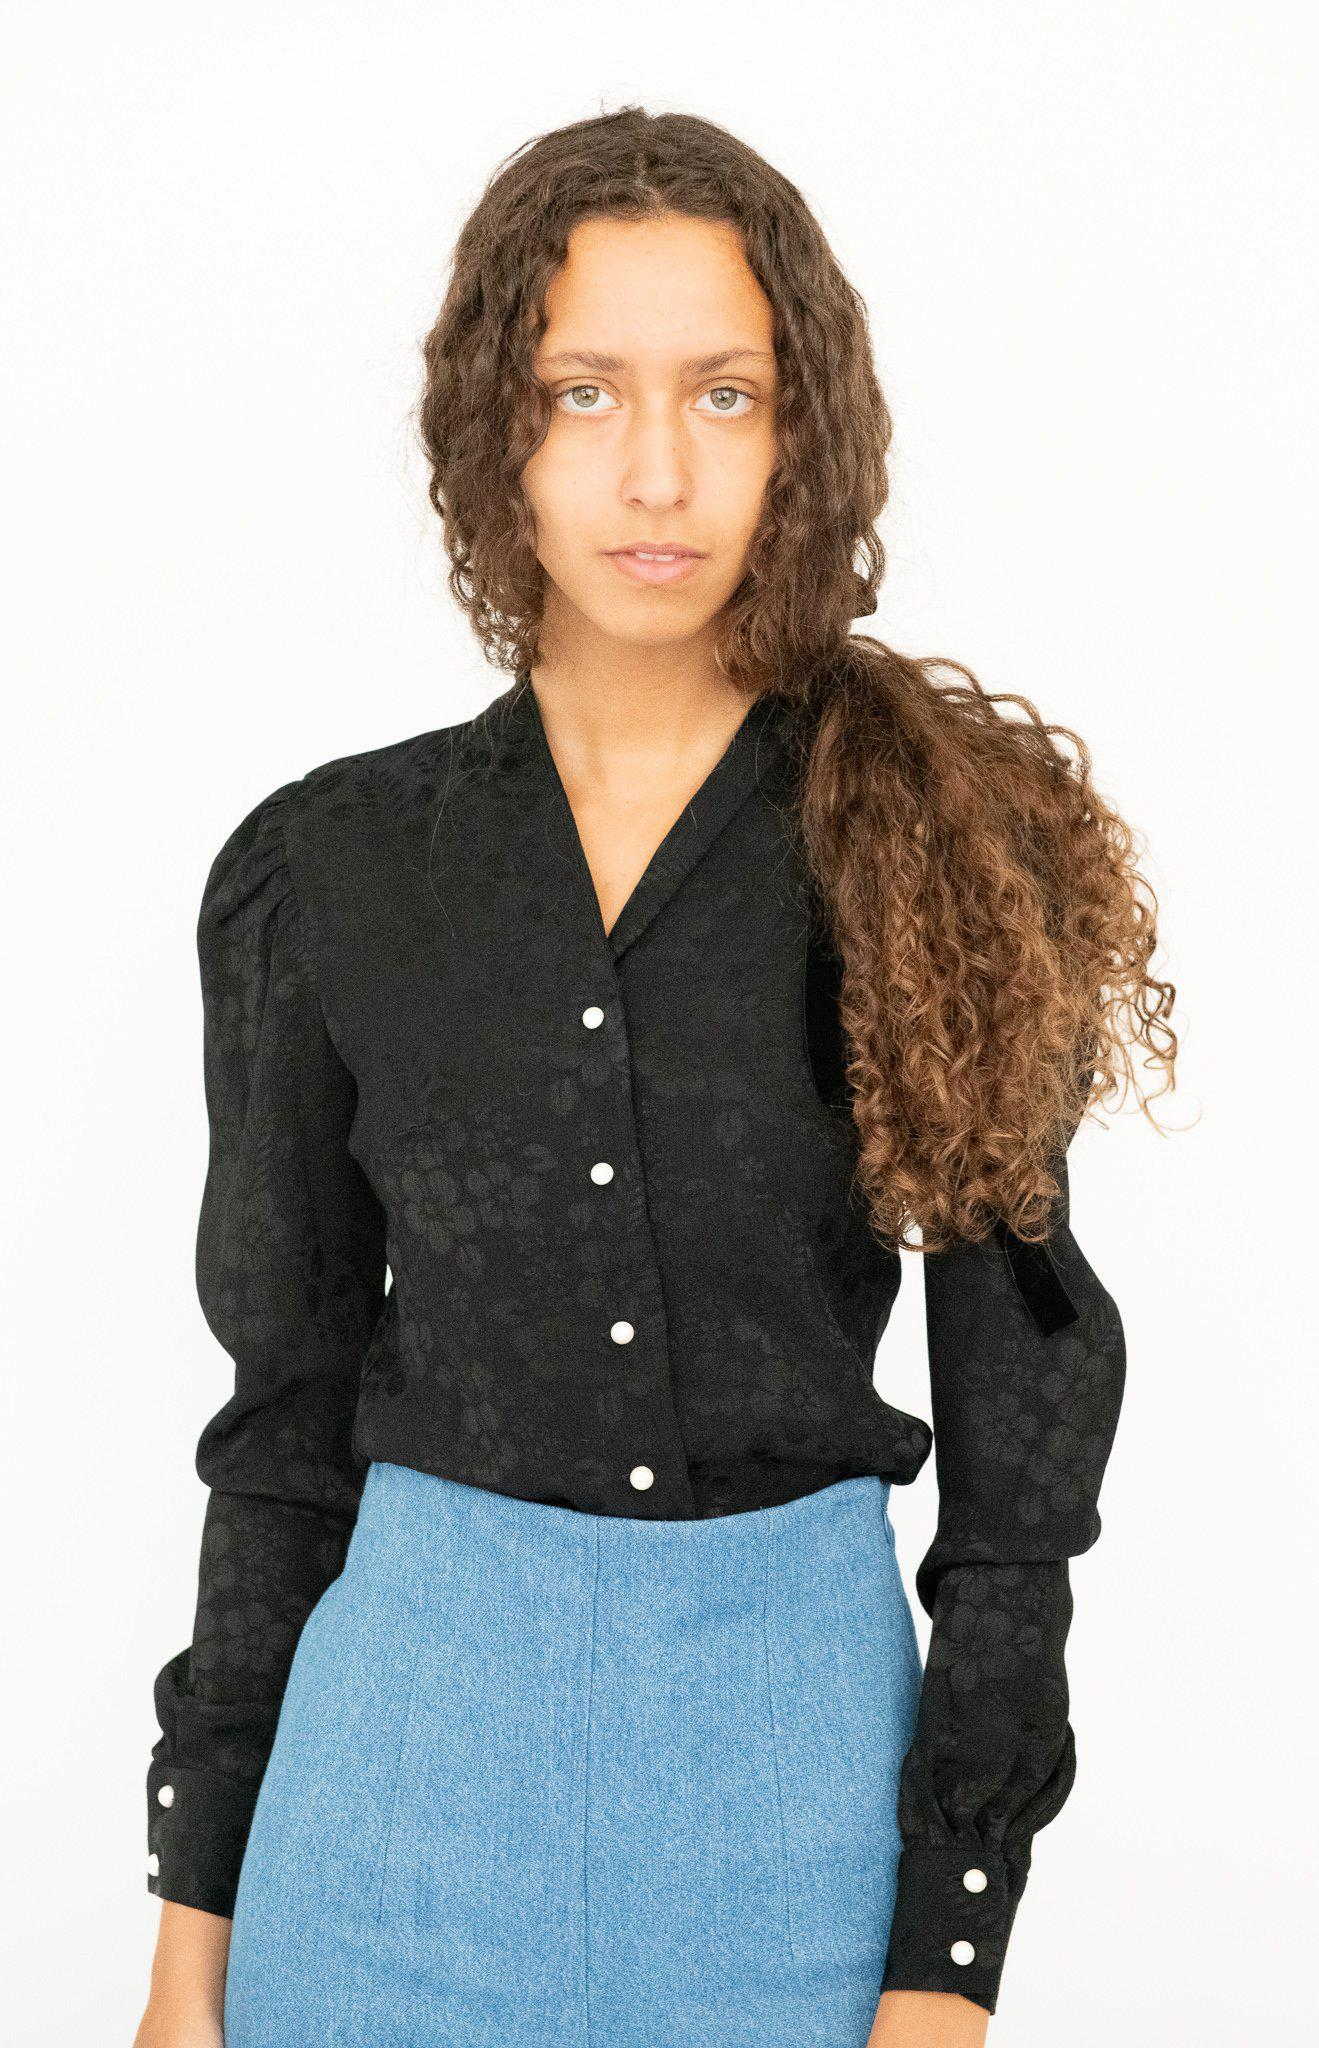 Suffrage Blouse in Black Floral Jacquard 3